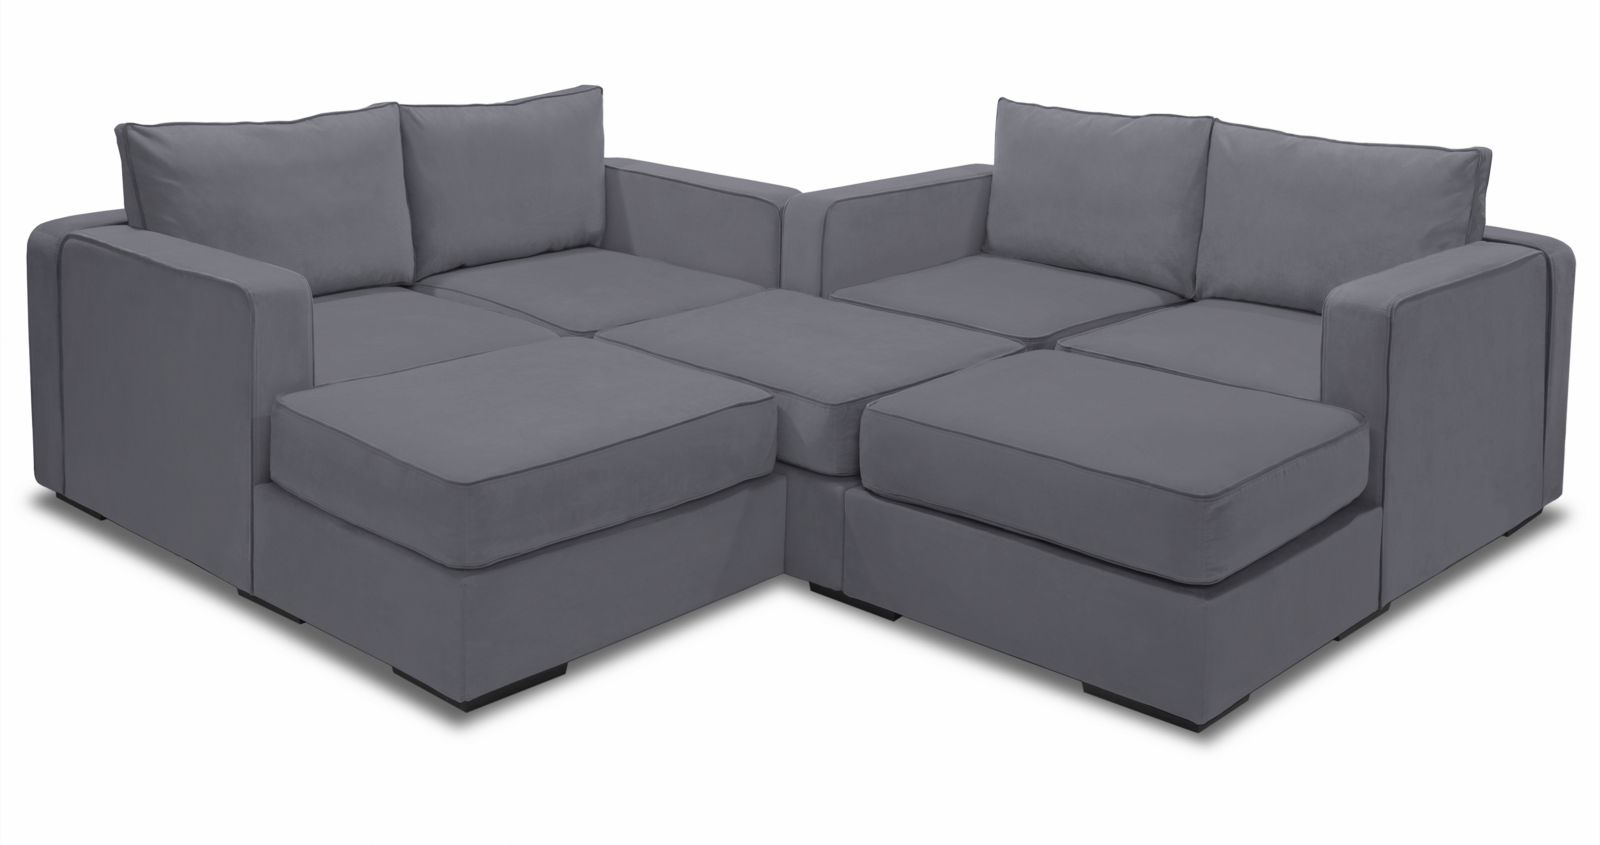 Large Modular Sectional Couch | 7 Seats + 8 Sides | Lovesac